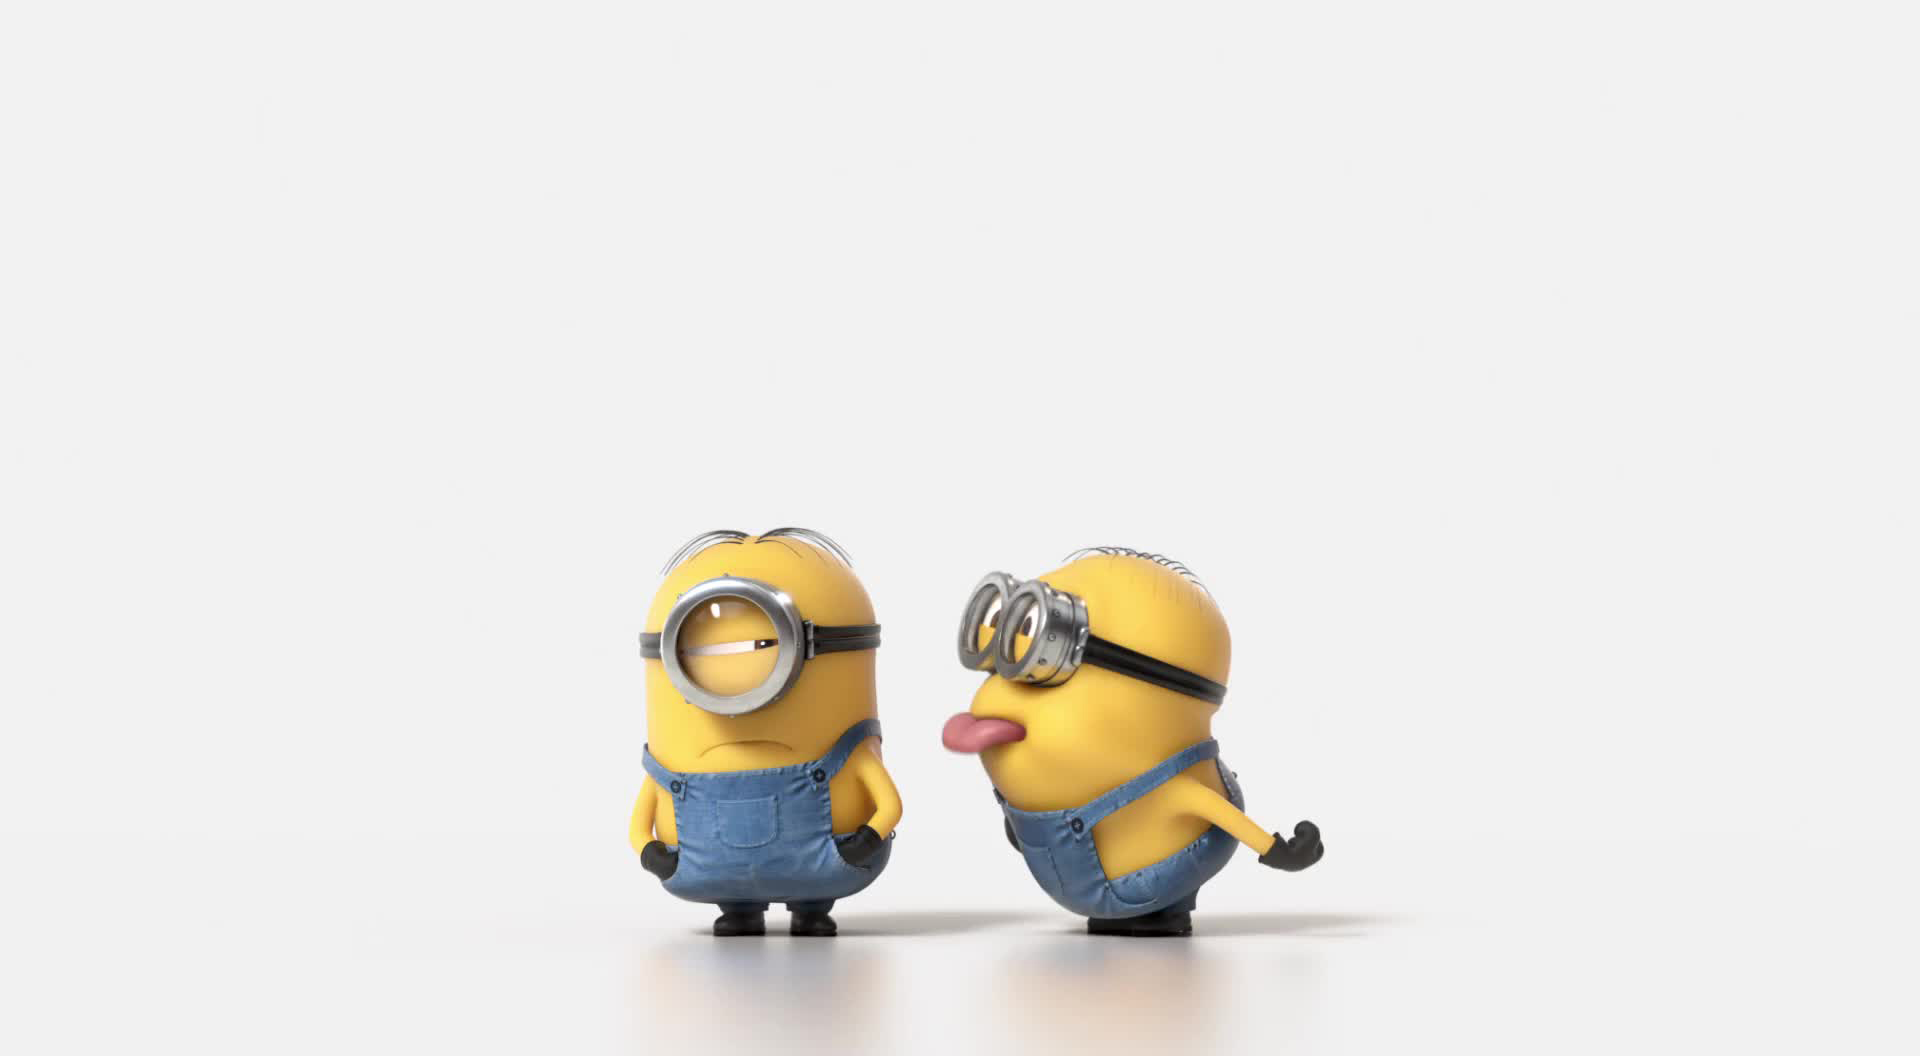 25 cute minions wallpapers collection - Despicable me minion screensaver ...